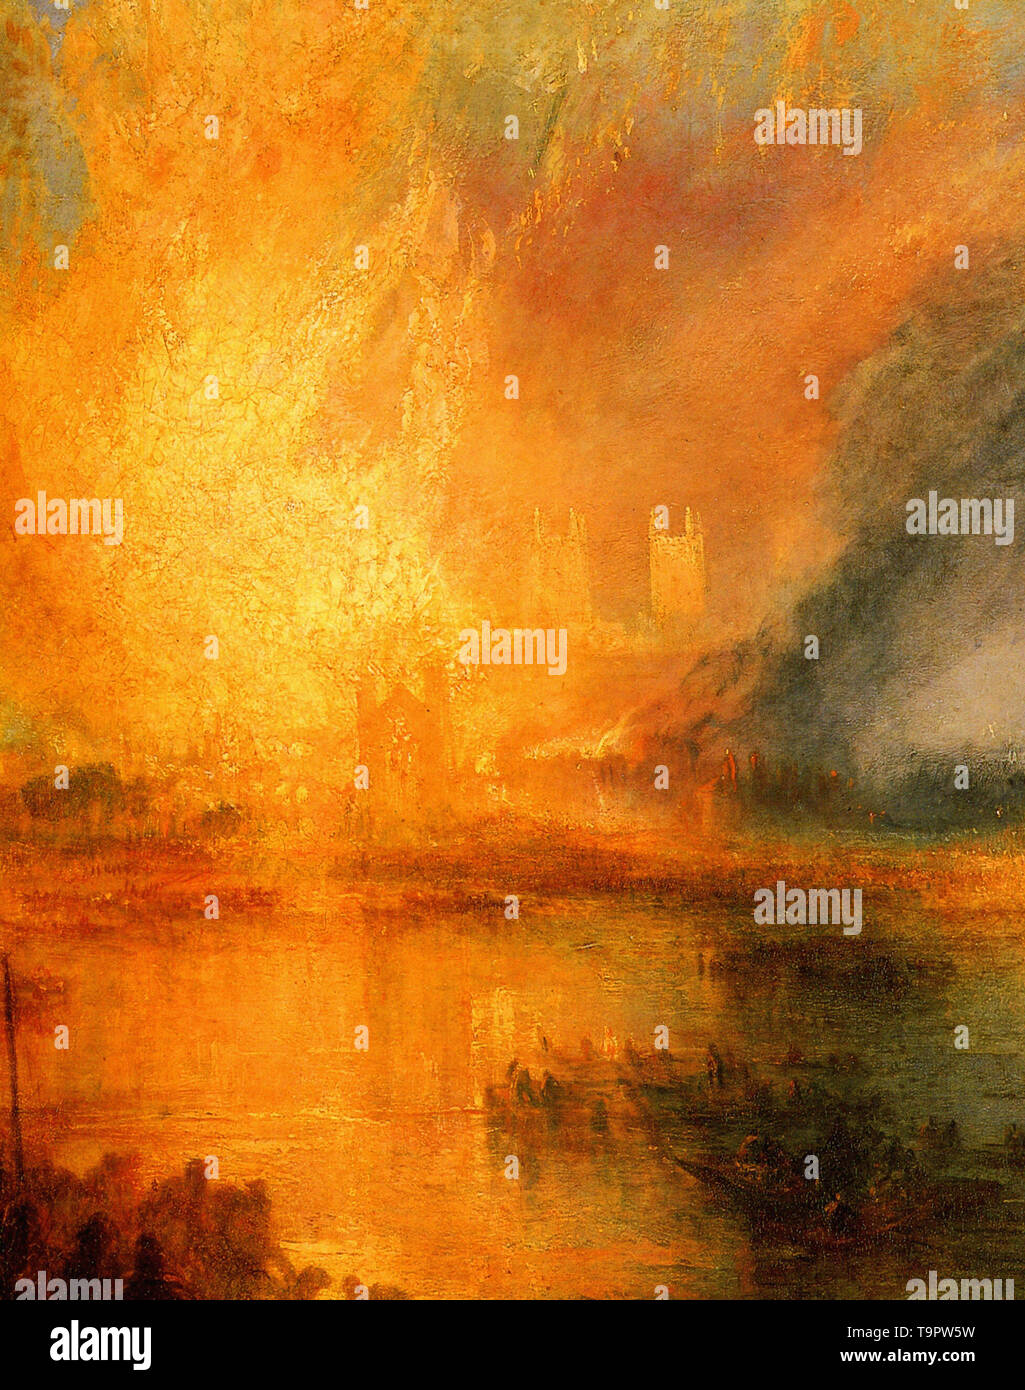 Joseph Mallord William Turner - burning houses parliament detail 1834 - Stock Image